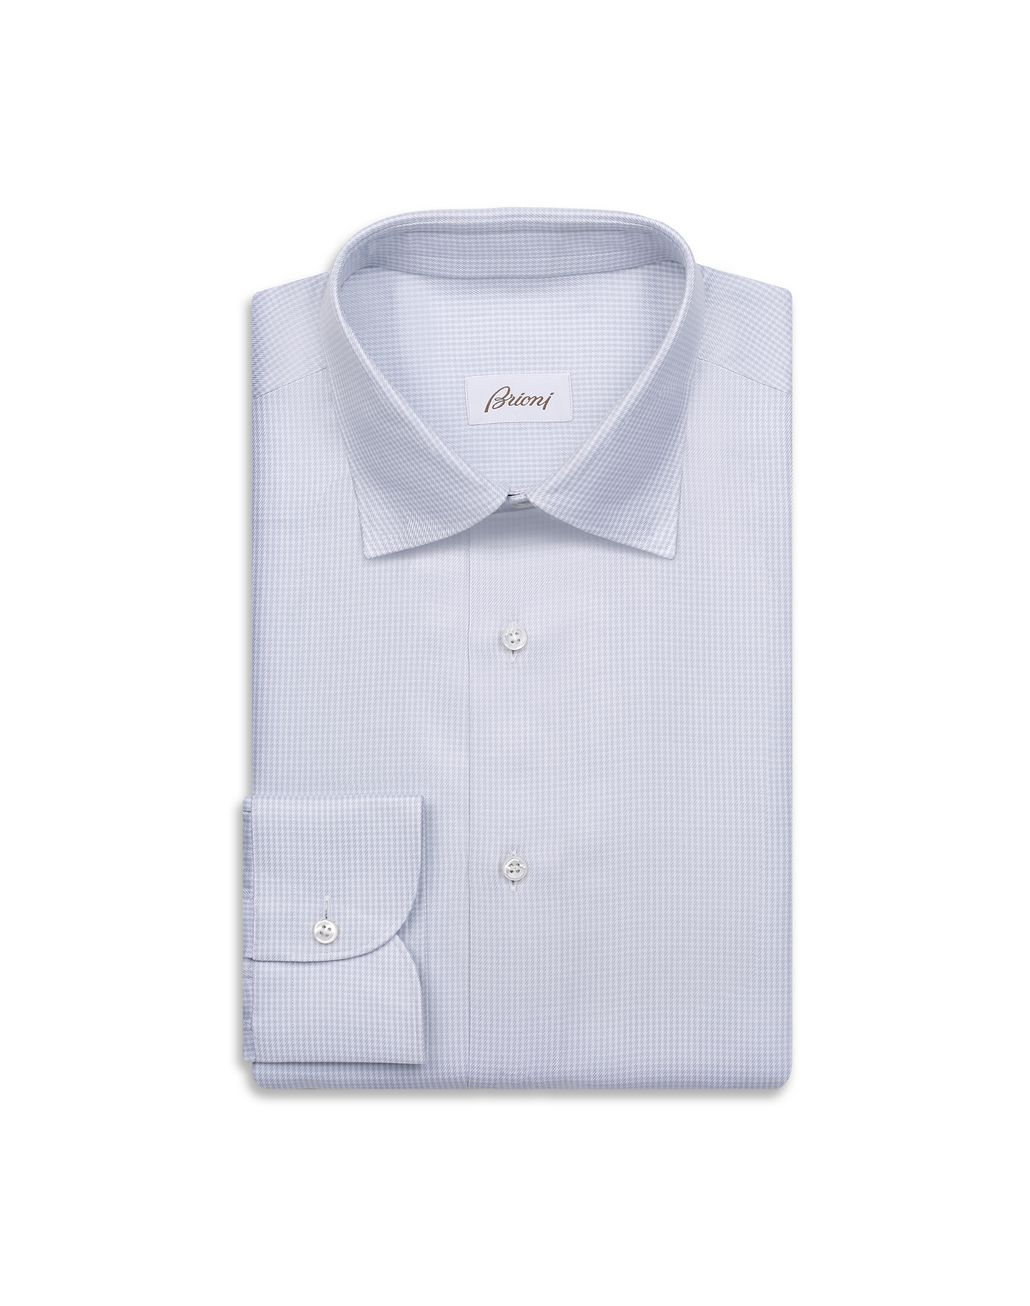 BRIONI White and Lead Gingham Formal Shirt Formal shirt Man f